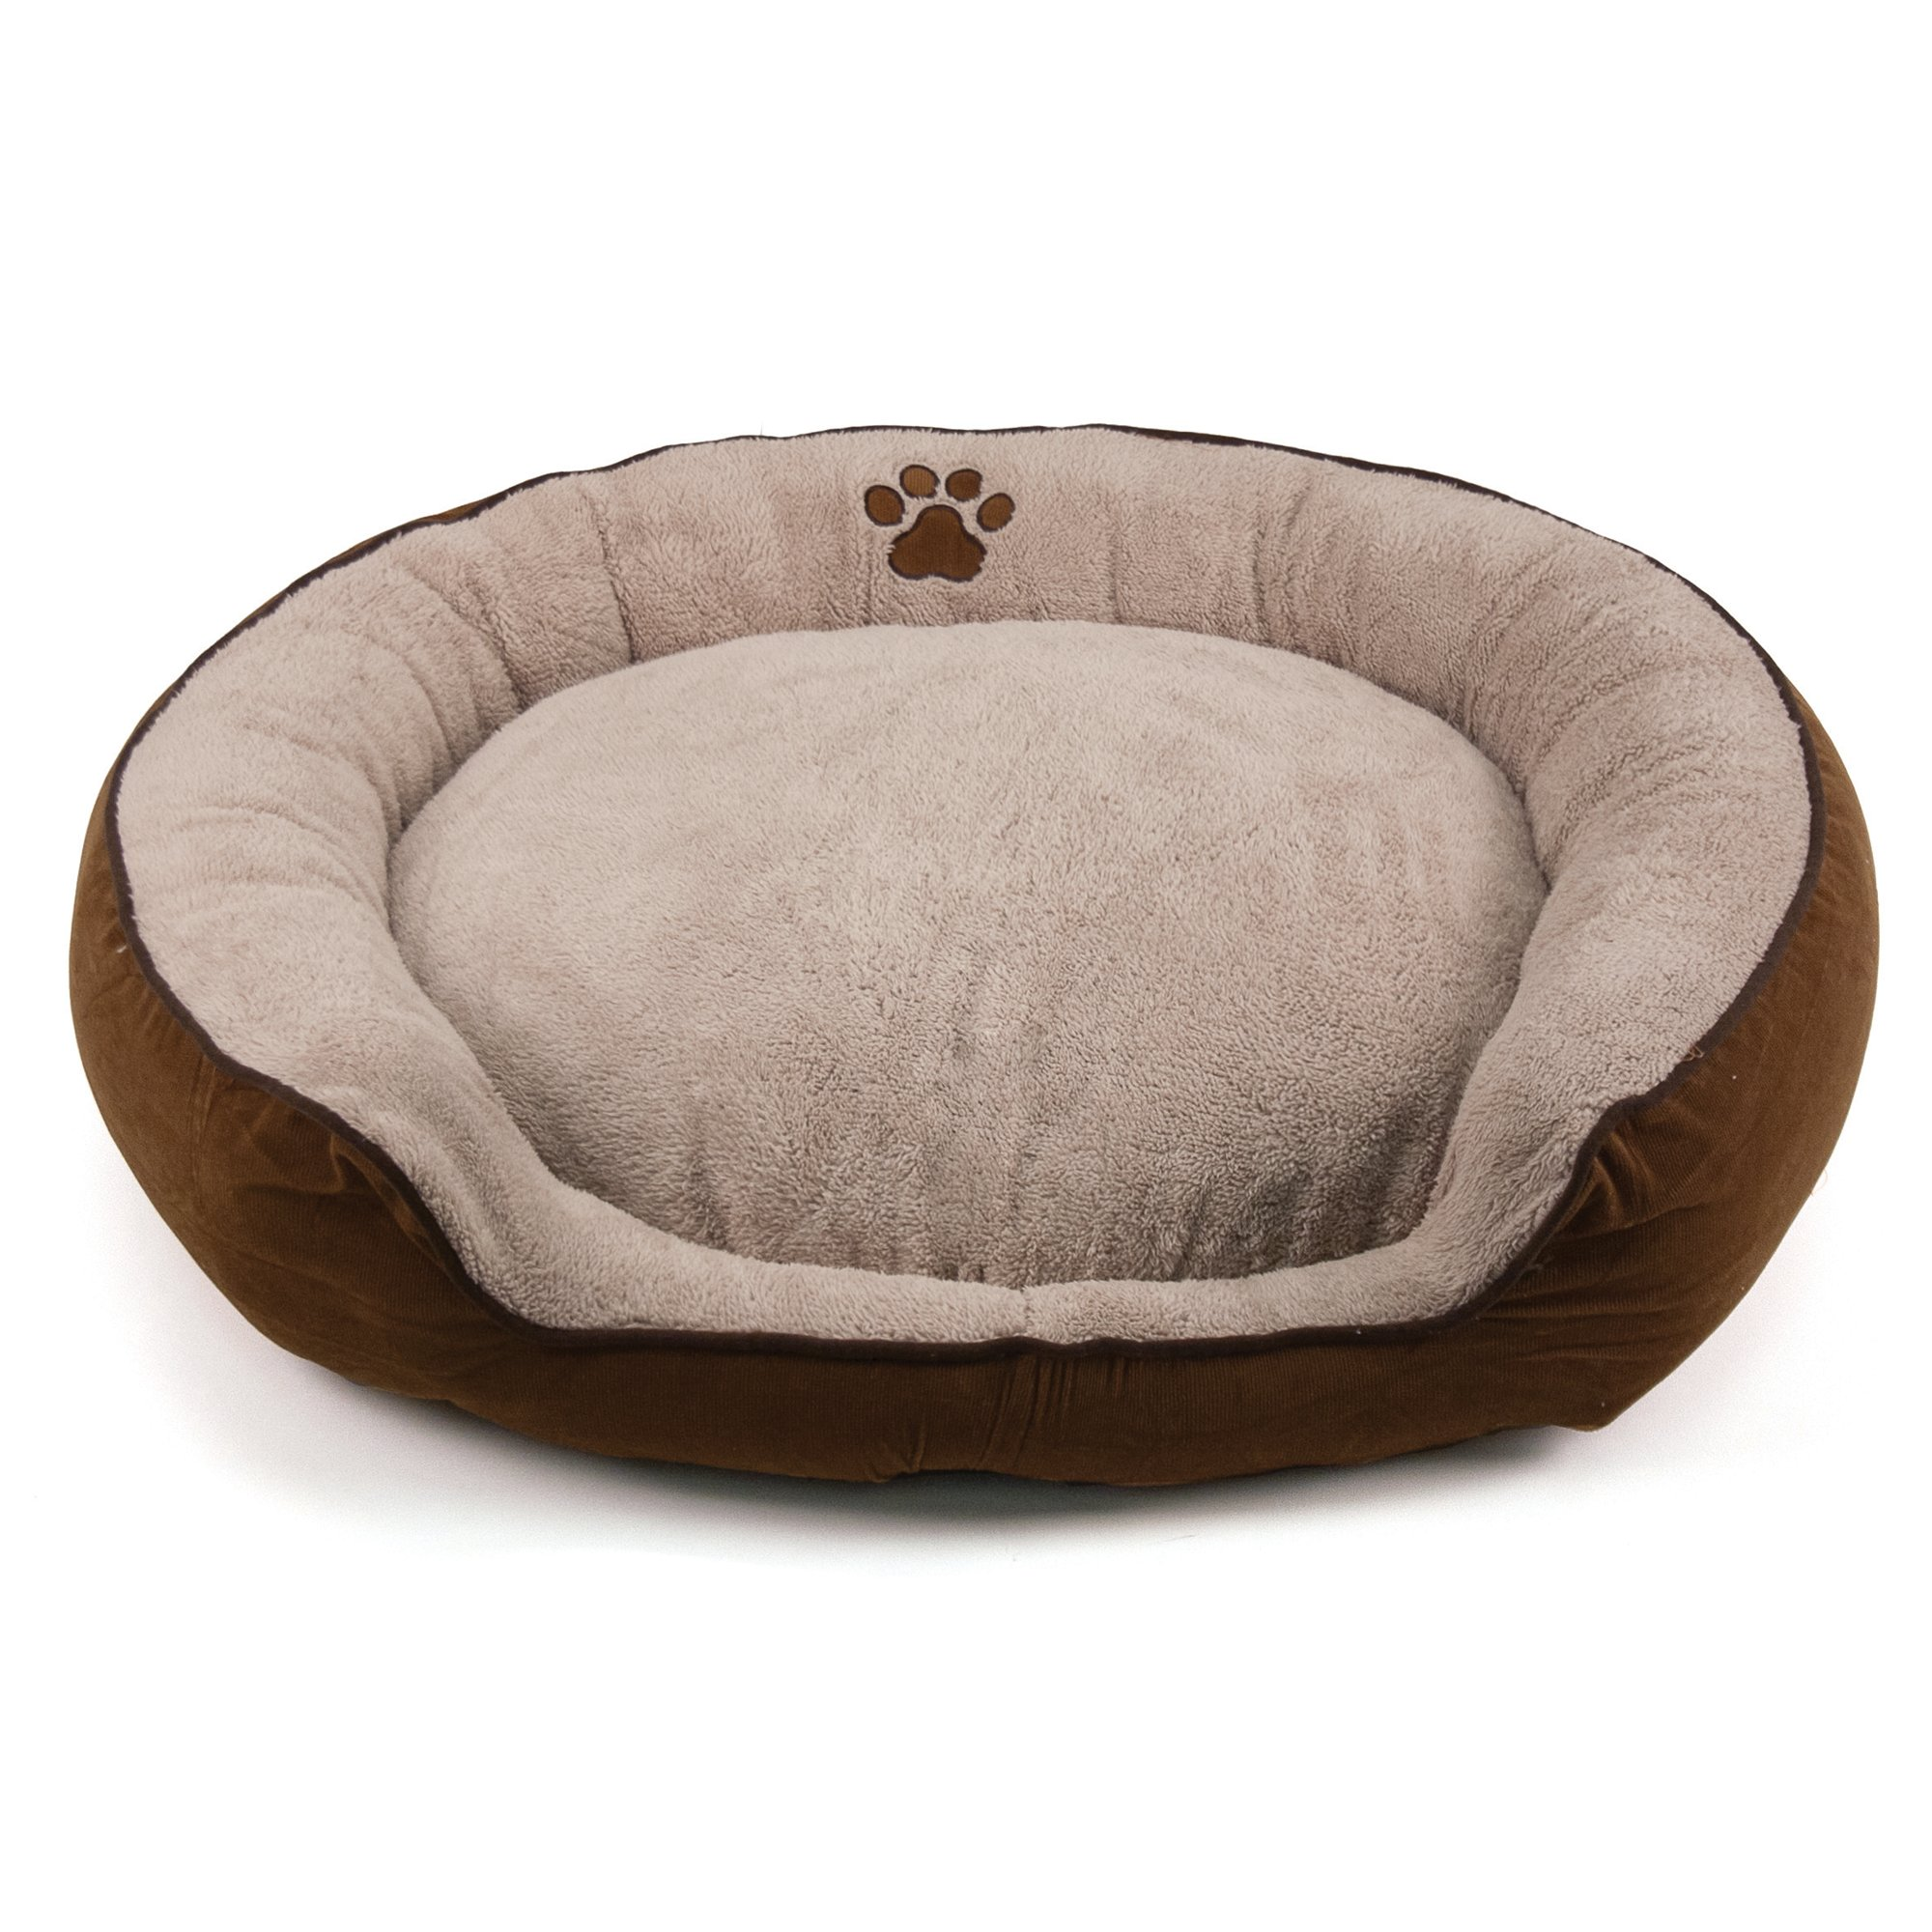 Dallas Manufacturing Tan Round Stepover Pet Bed